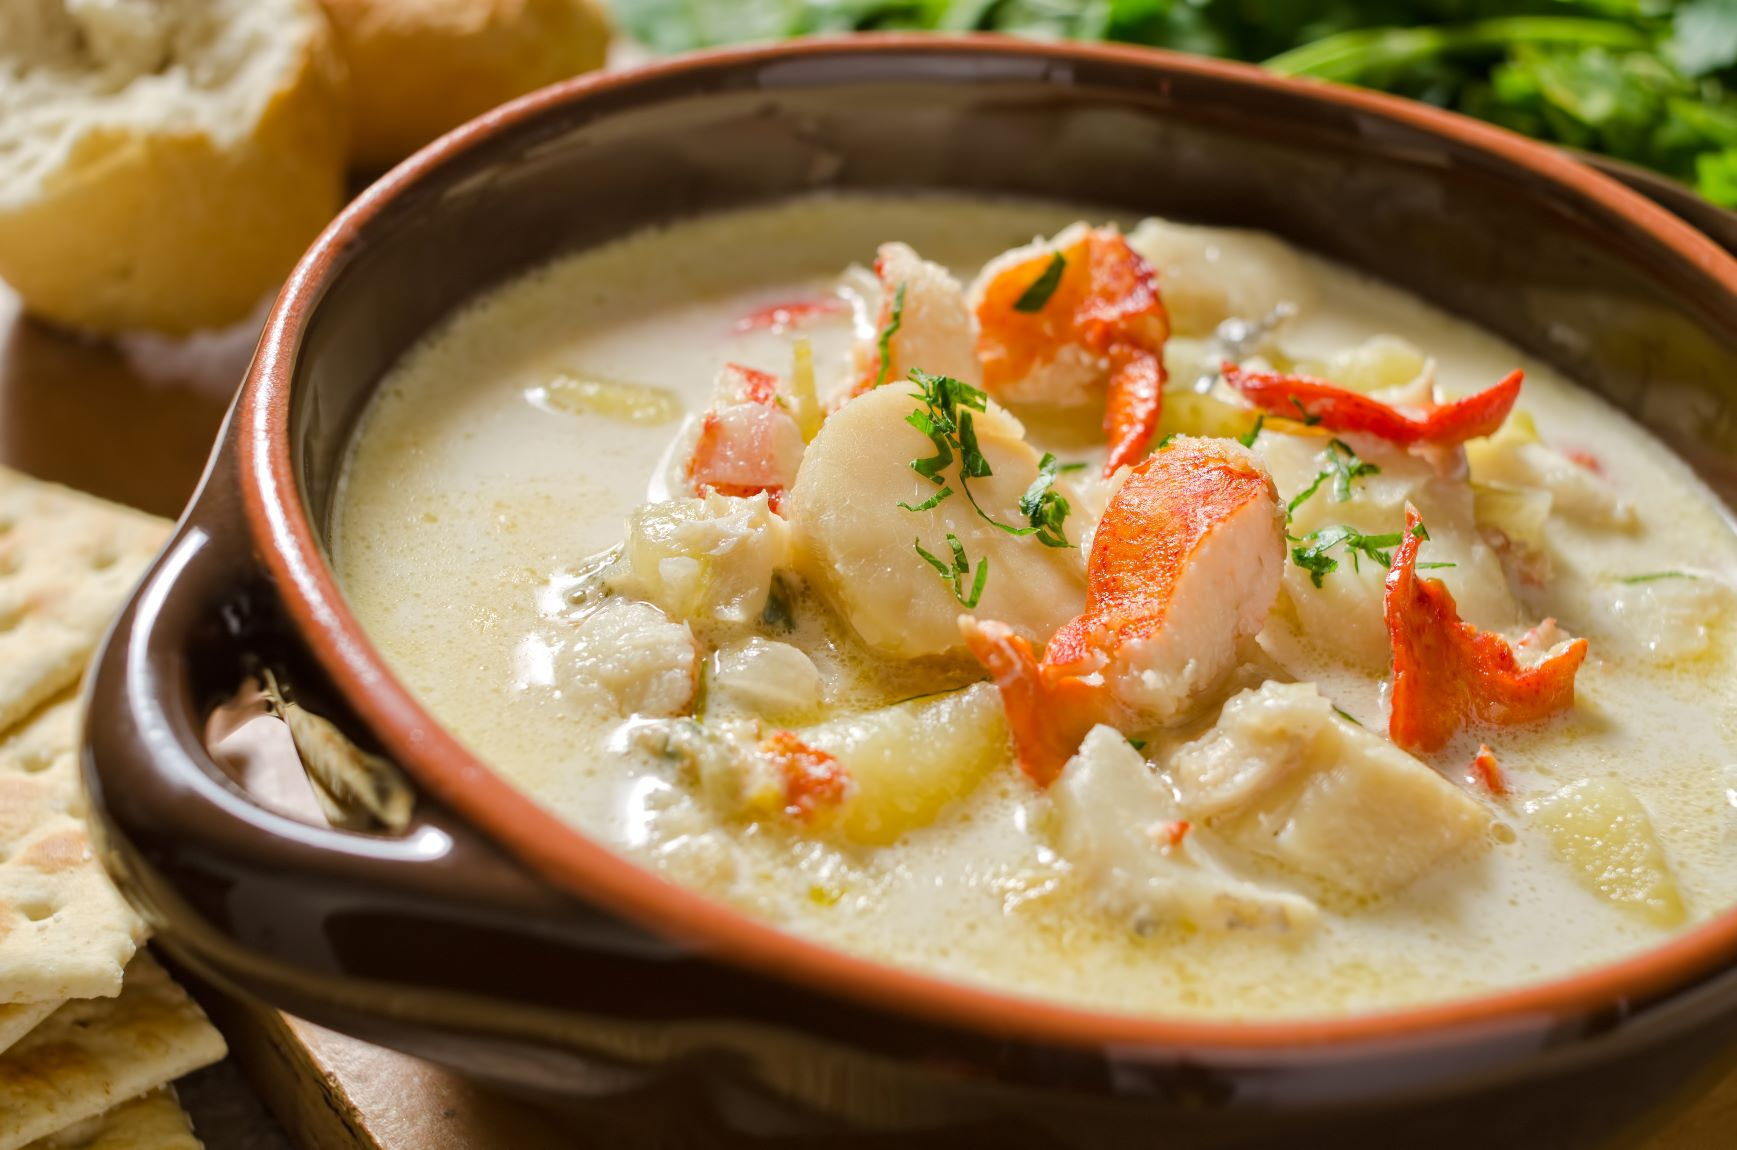 A bowl of authentic Maine seafood chowder.